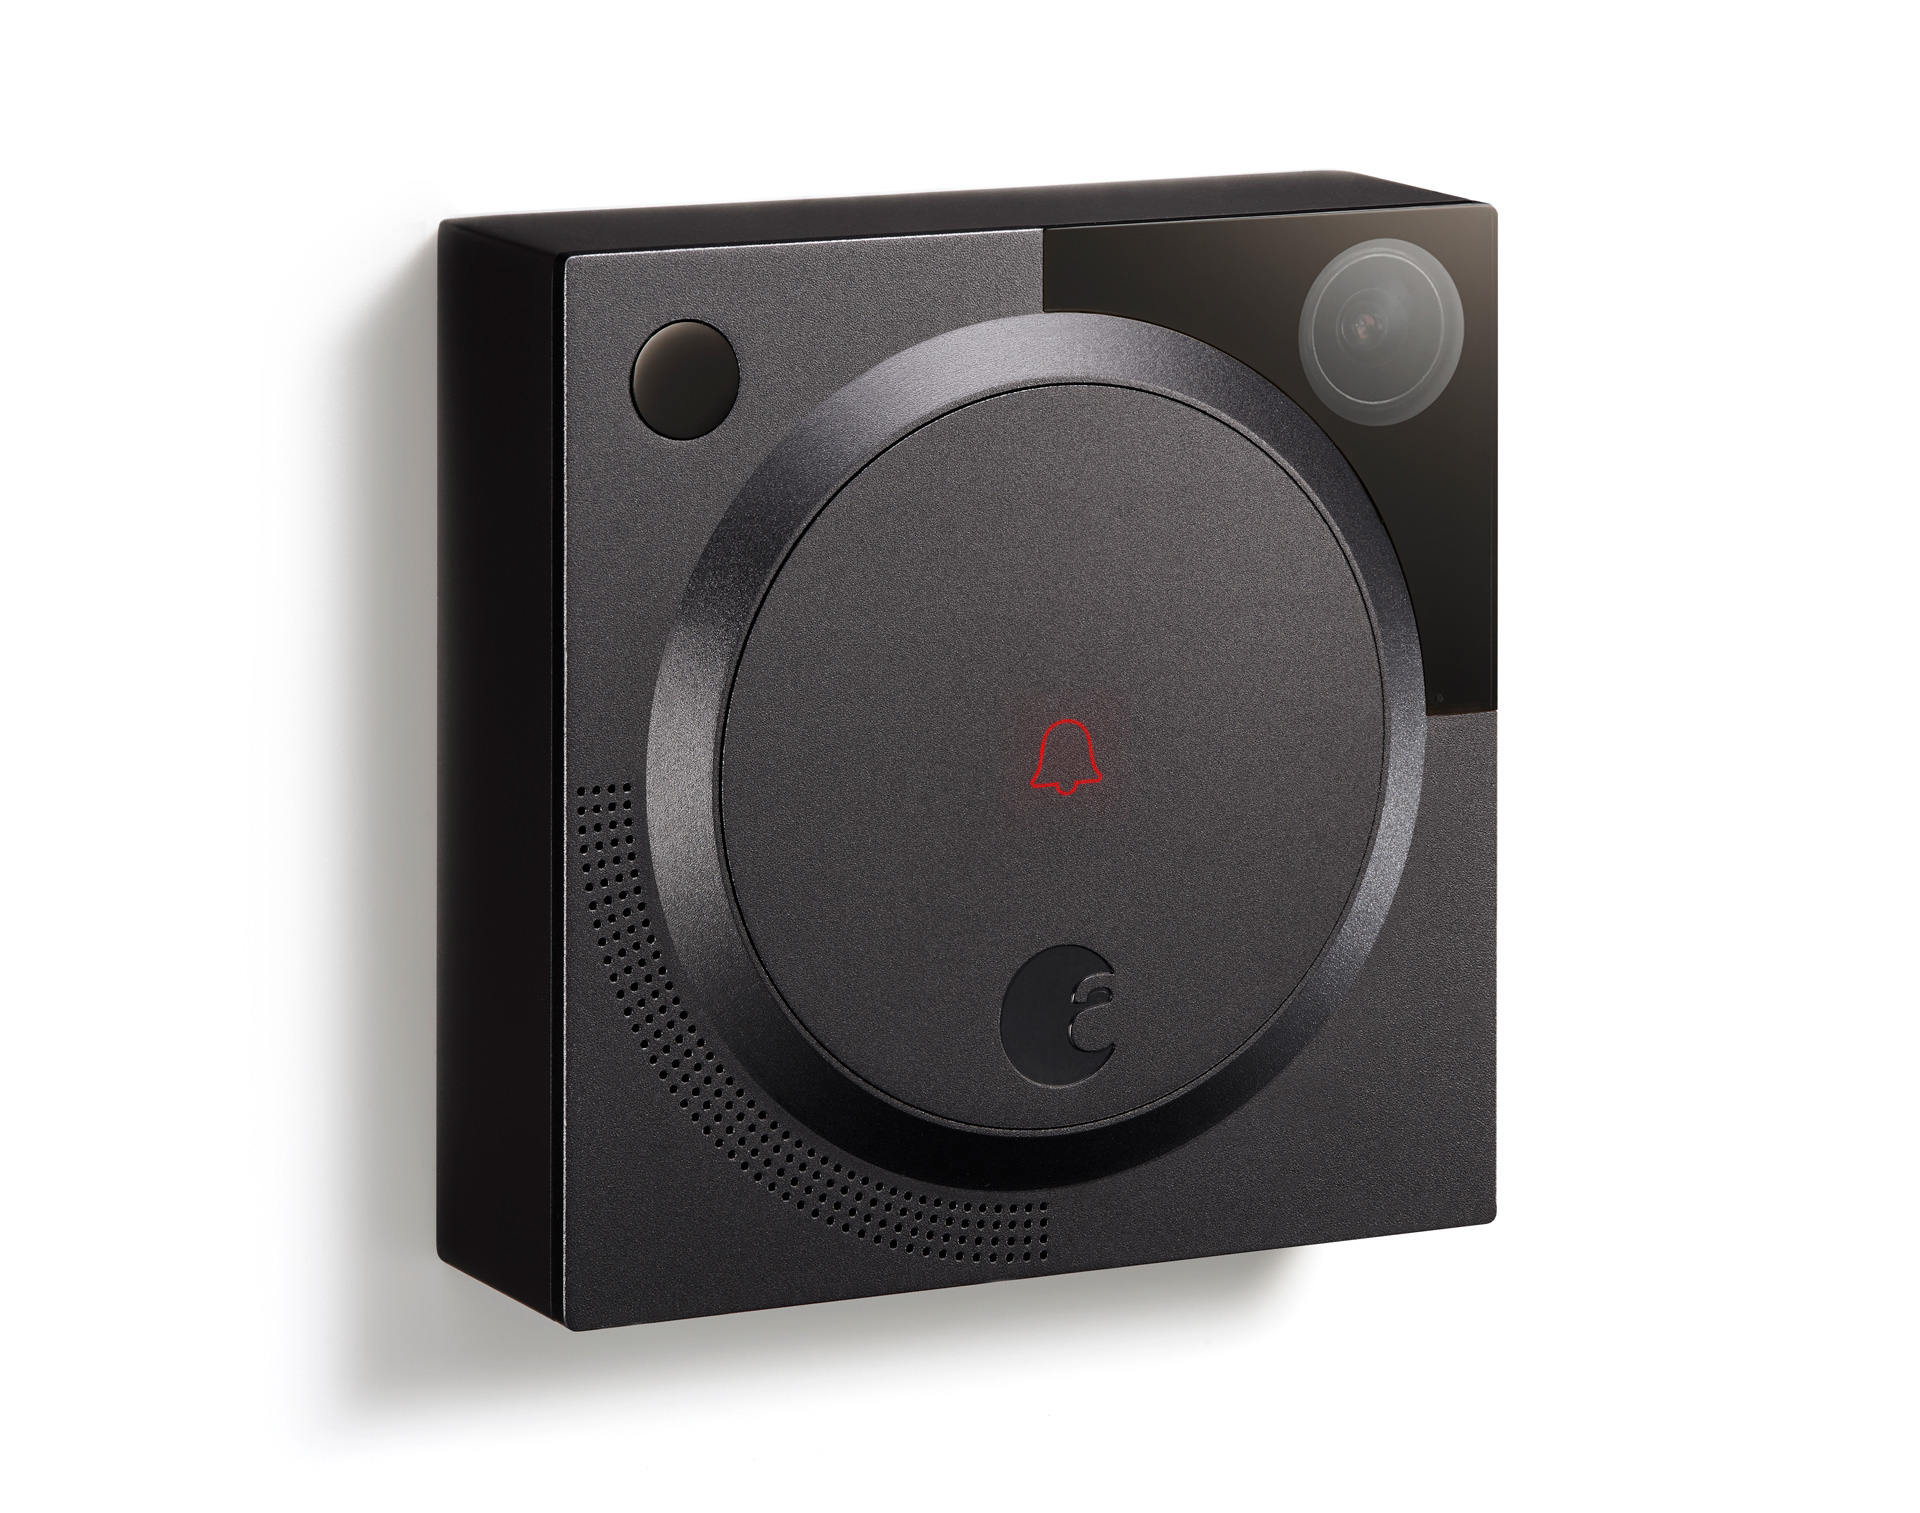 August Adds Siri Control For Smart Locks, Remote Home Access